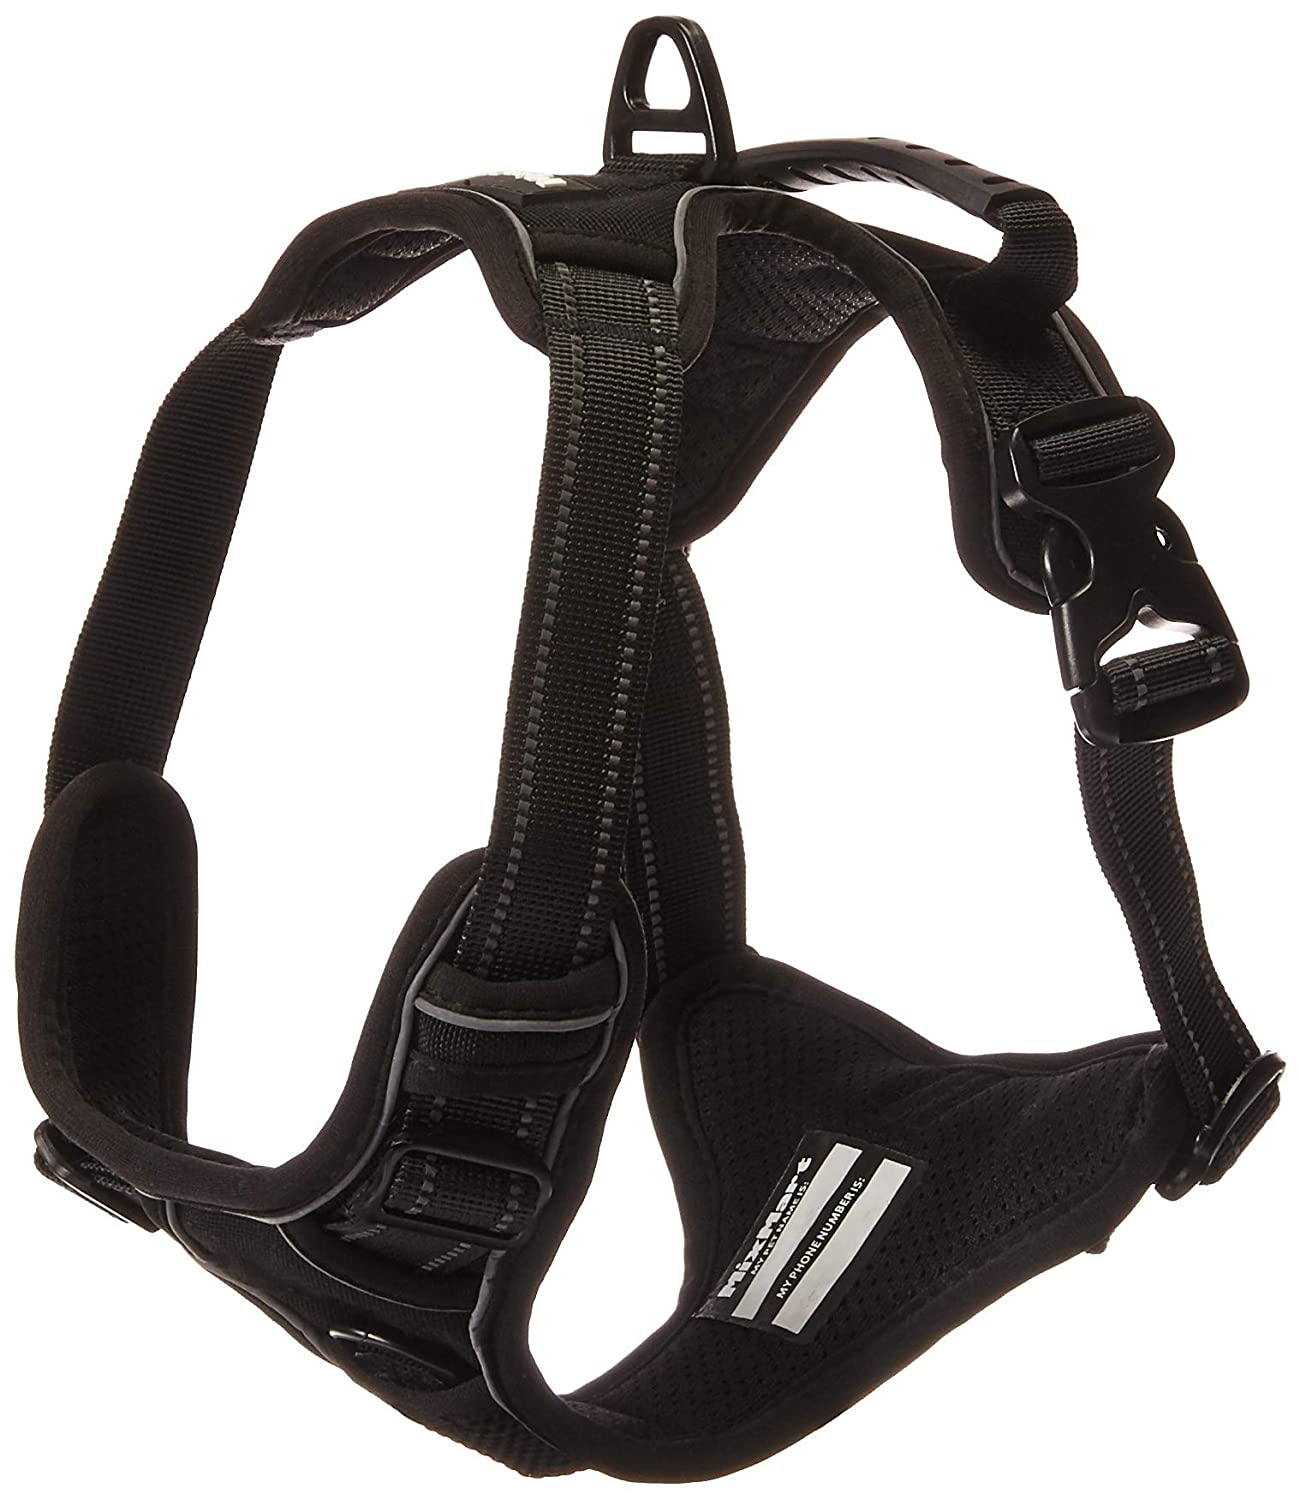 M MixMart Dog Harness, No-Pull Vest Harness 3M Reflective Pet Harness with Handle and Leash Attachments for Small Medium Large Dogs (Black)